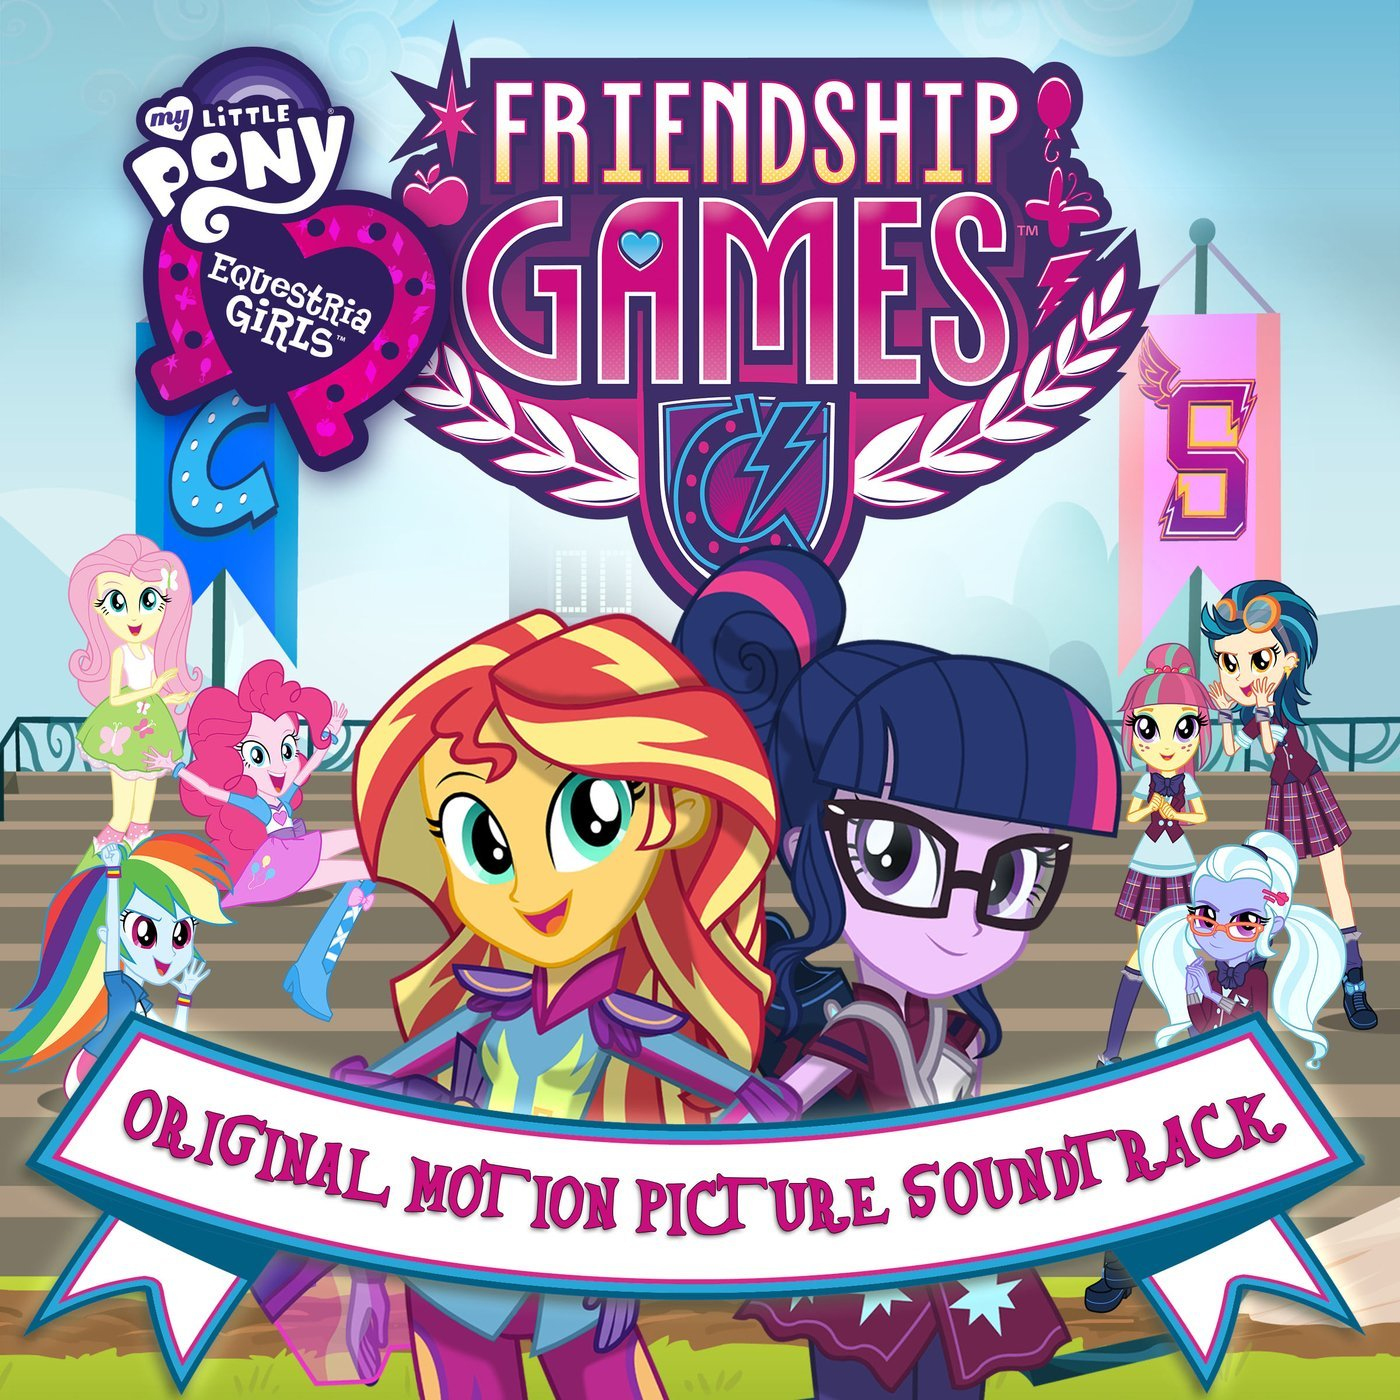 My Little Pony Equestria Girls: Friendship Games - Original Motion Picture Soundtrack